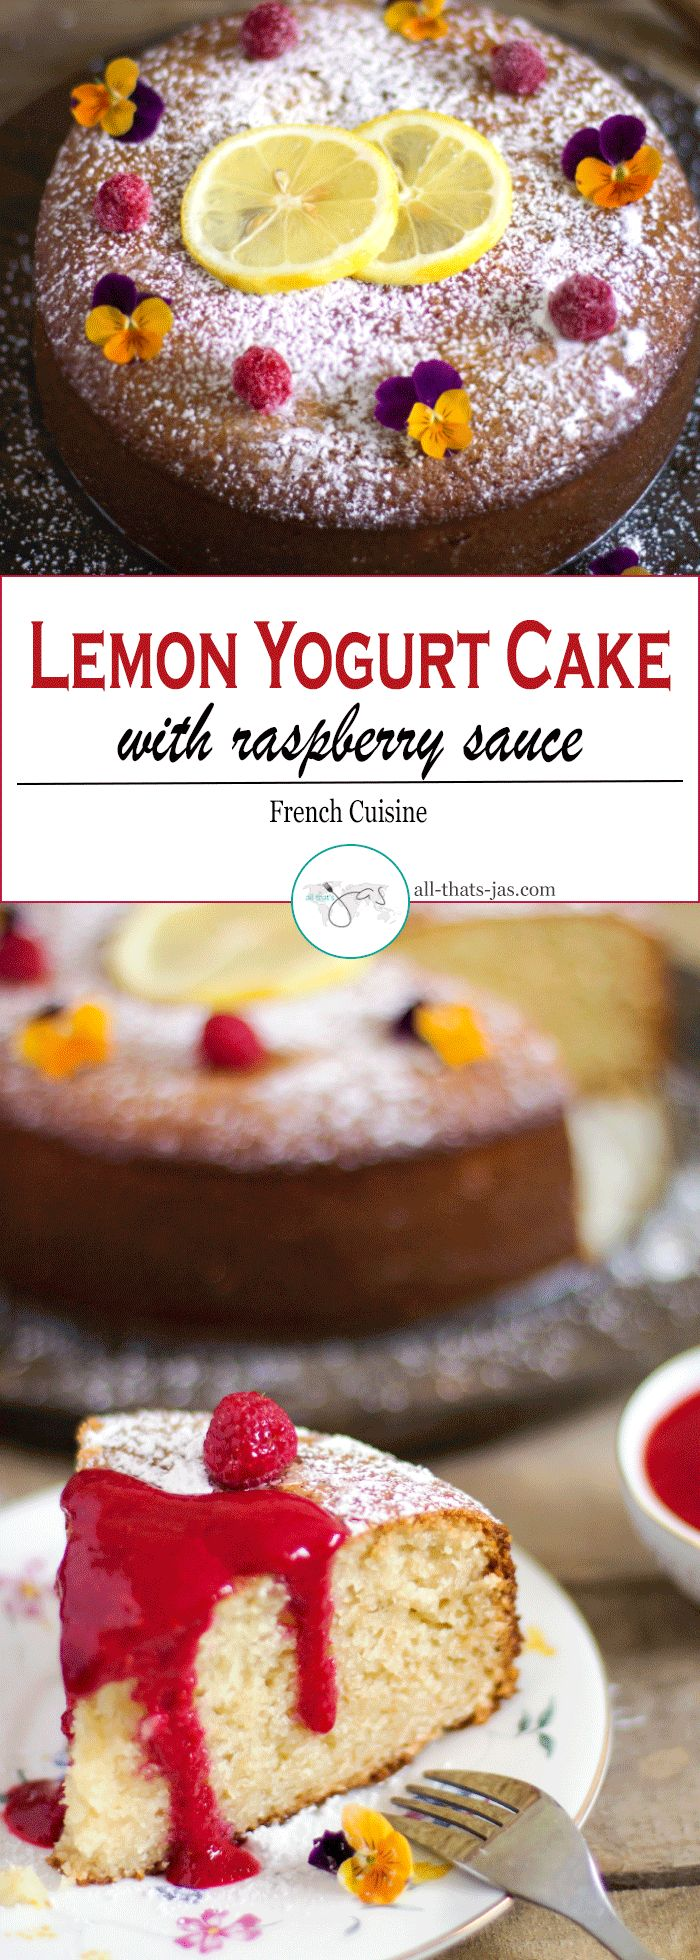 This easy lemon yogurt cake with raspberry sauce takes only minutes to put together and makes a perfect go-to dessert or delicious afternoon snack.